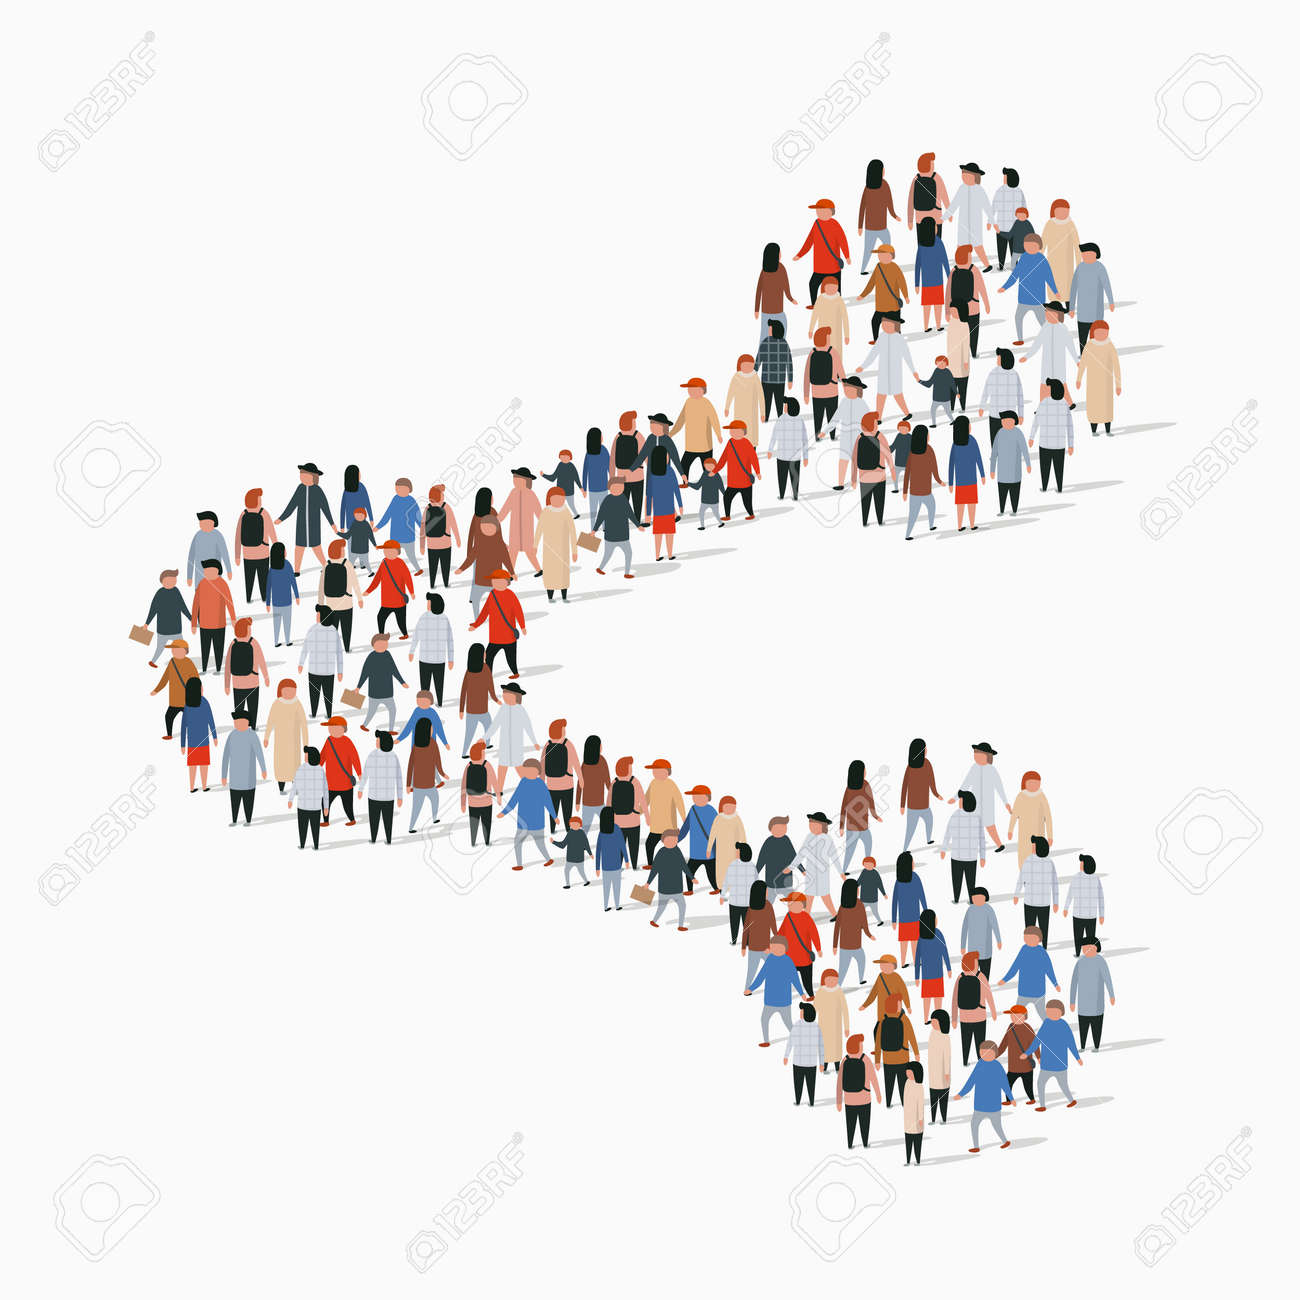 Large group of people in the shape of share sign. Vector illustration. - 128491083